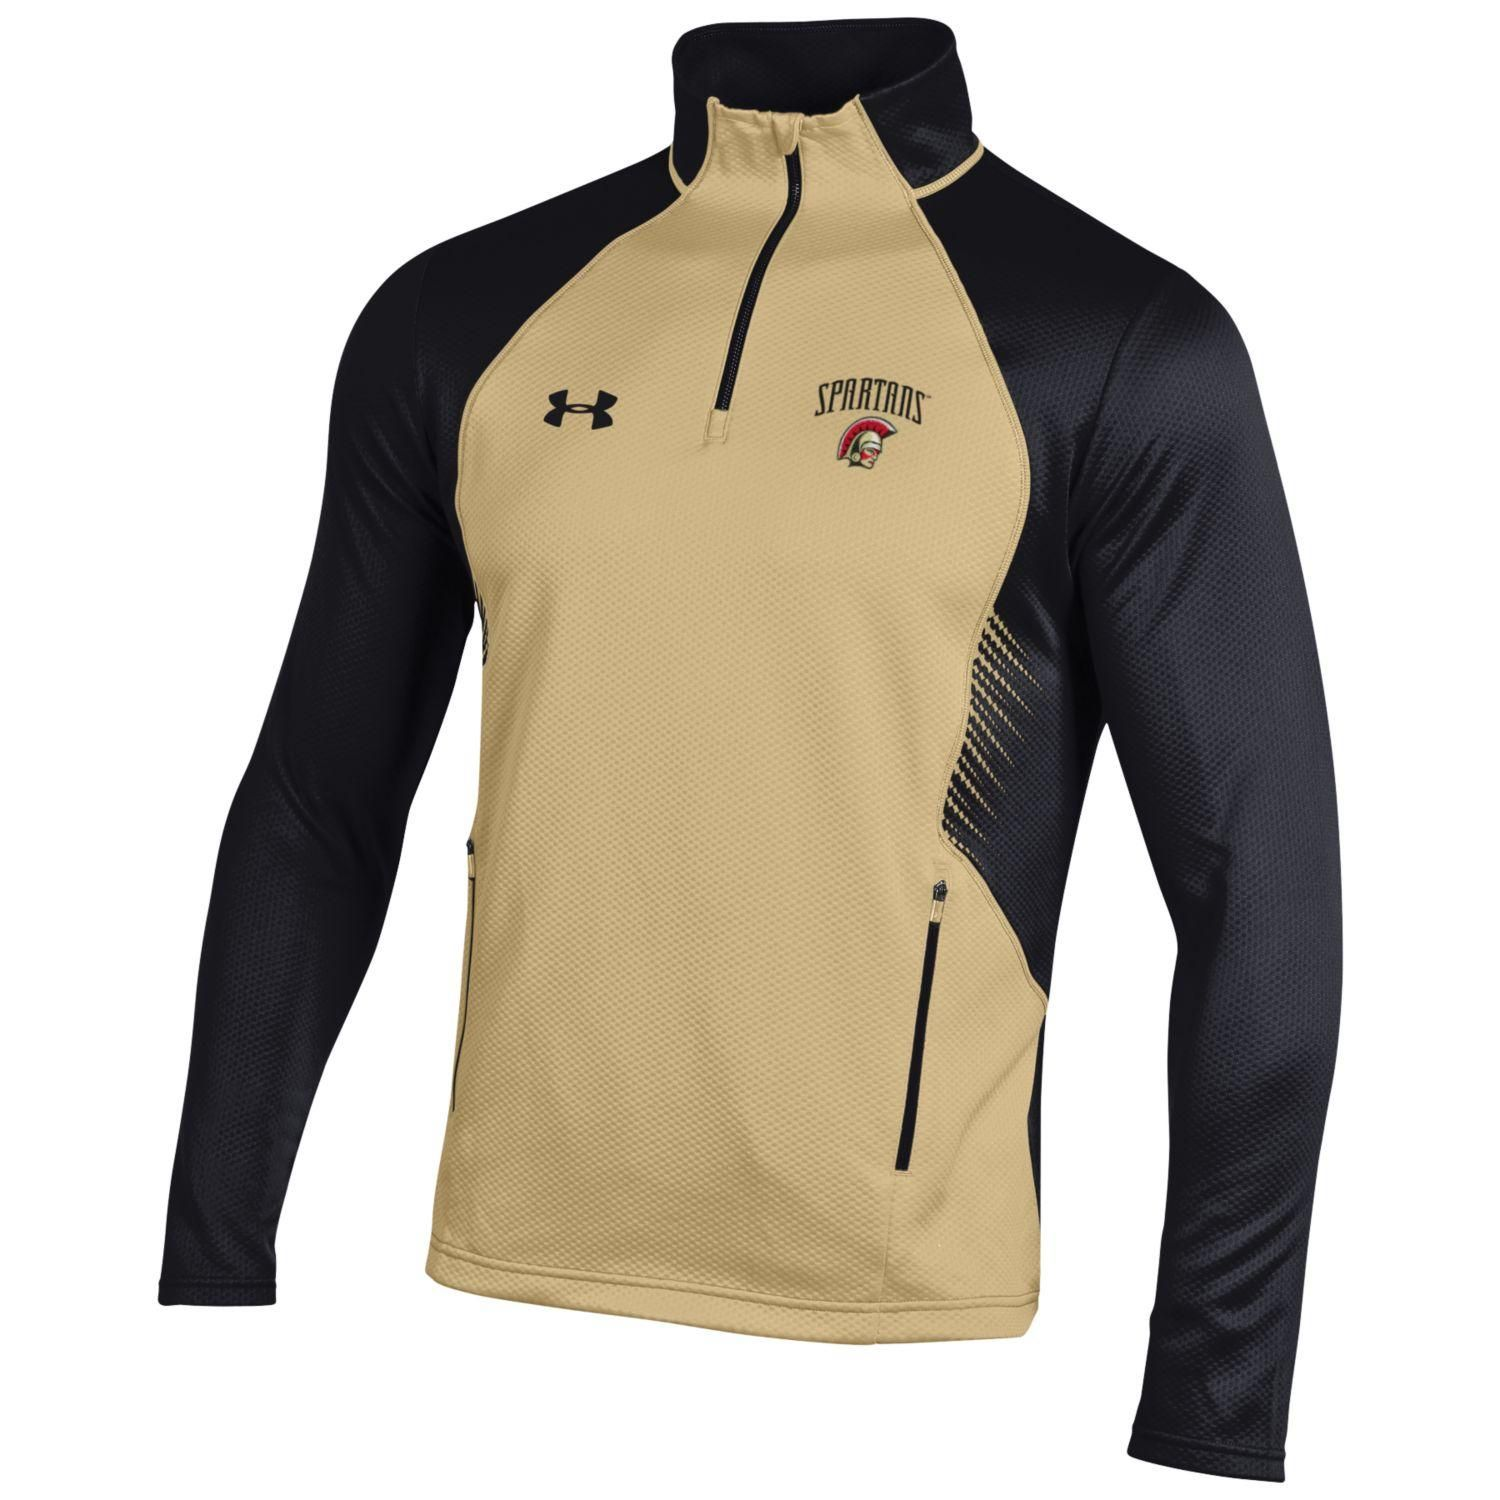 52a1171f7246 Under Armour special sleeve 1 4 zip pullover in vegas gold and black.  Embroidered logo on left chest. Adult sizes S - 2X